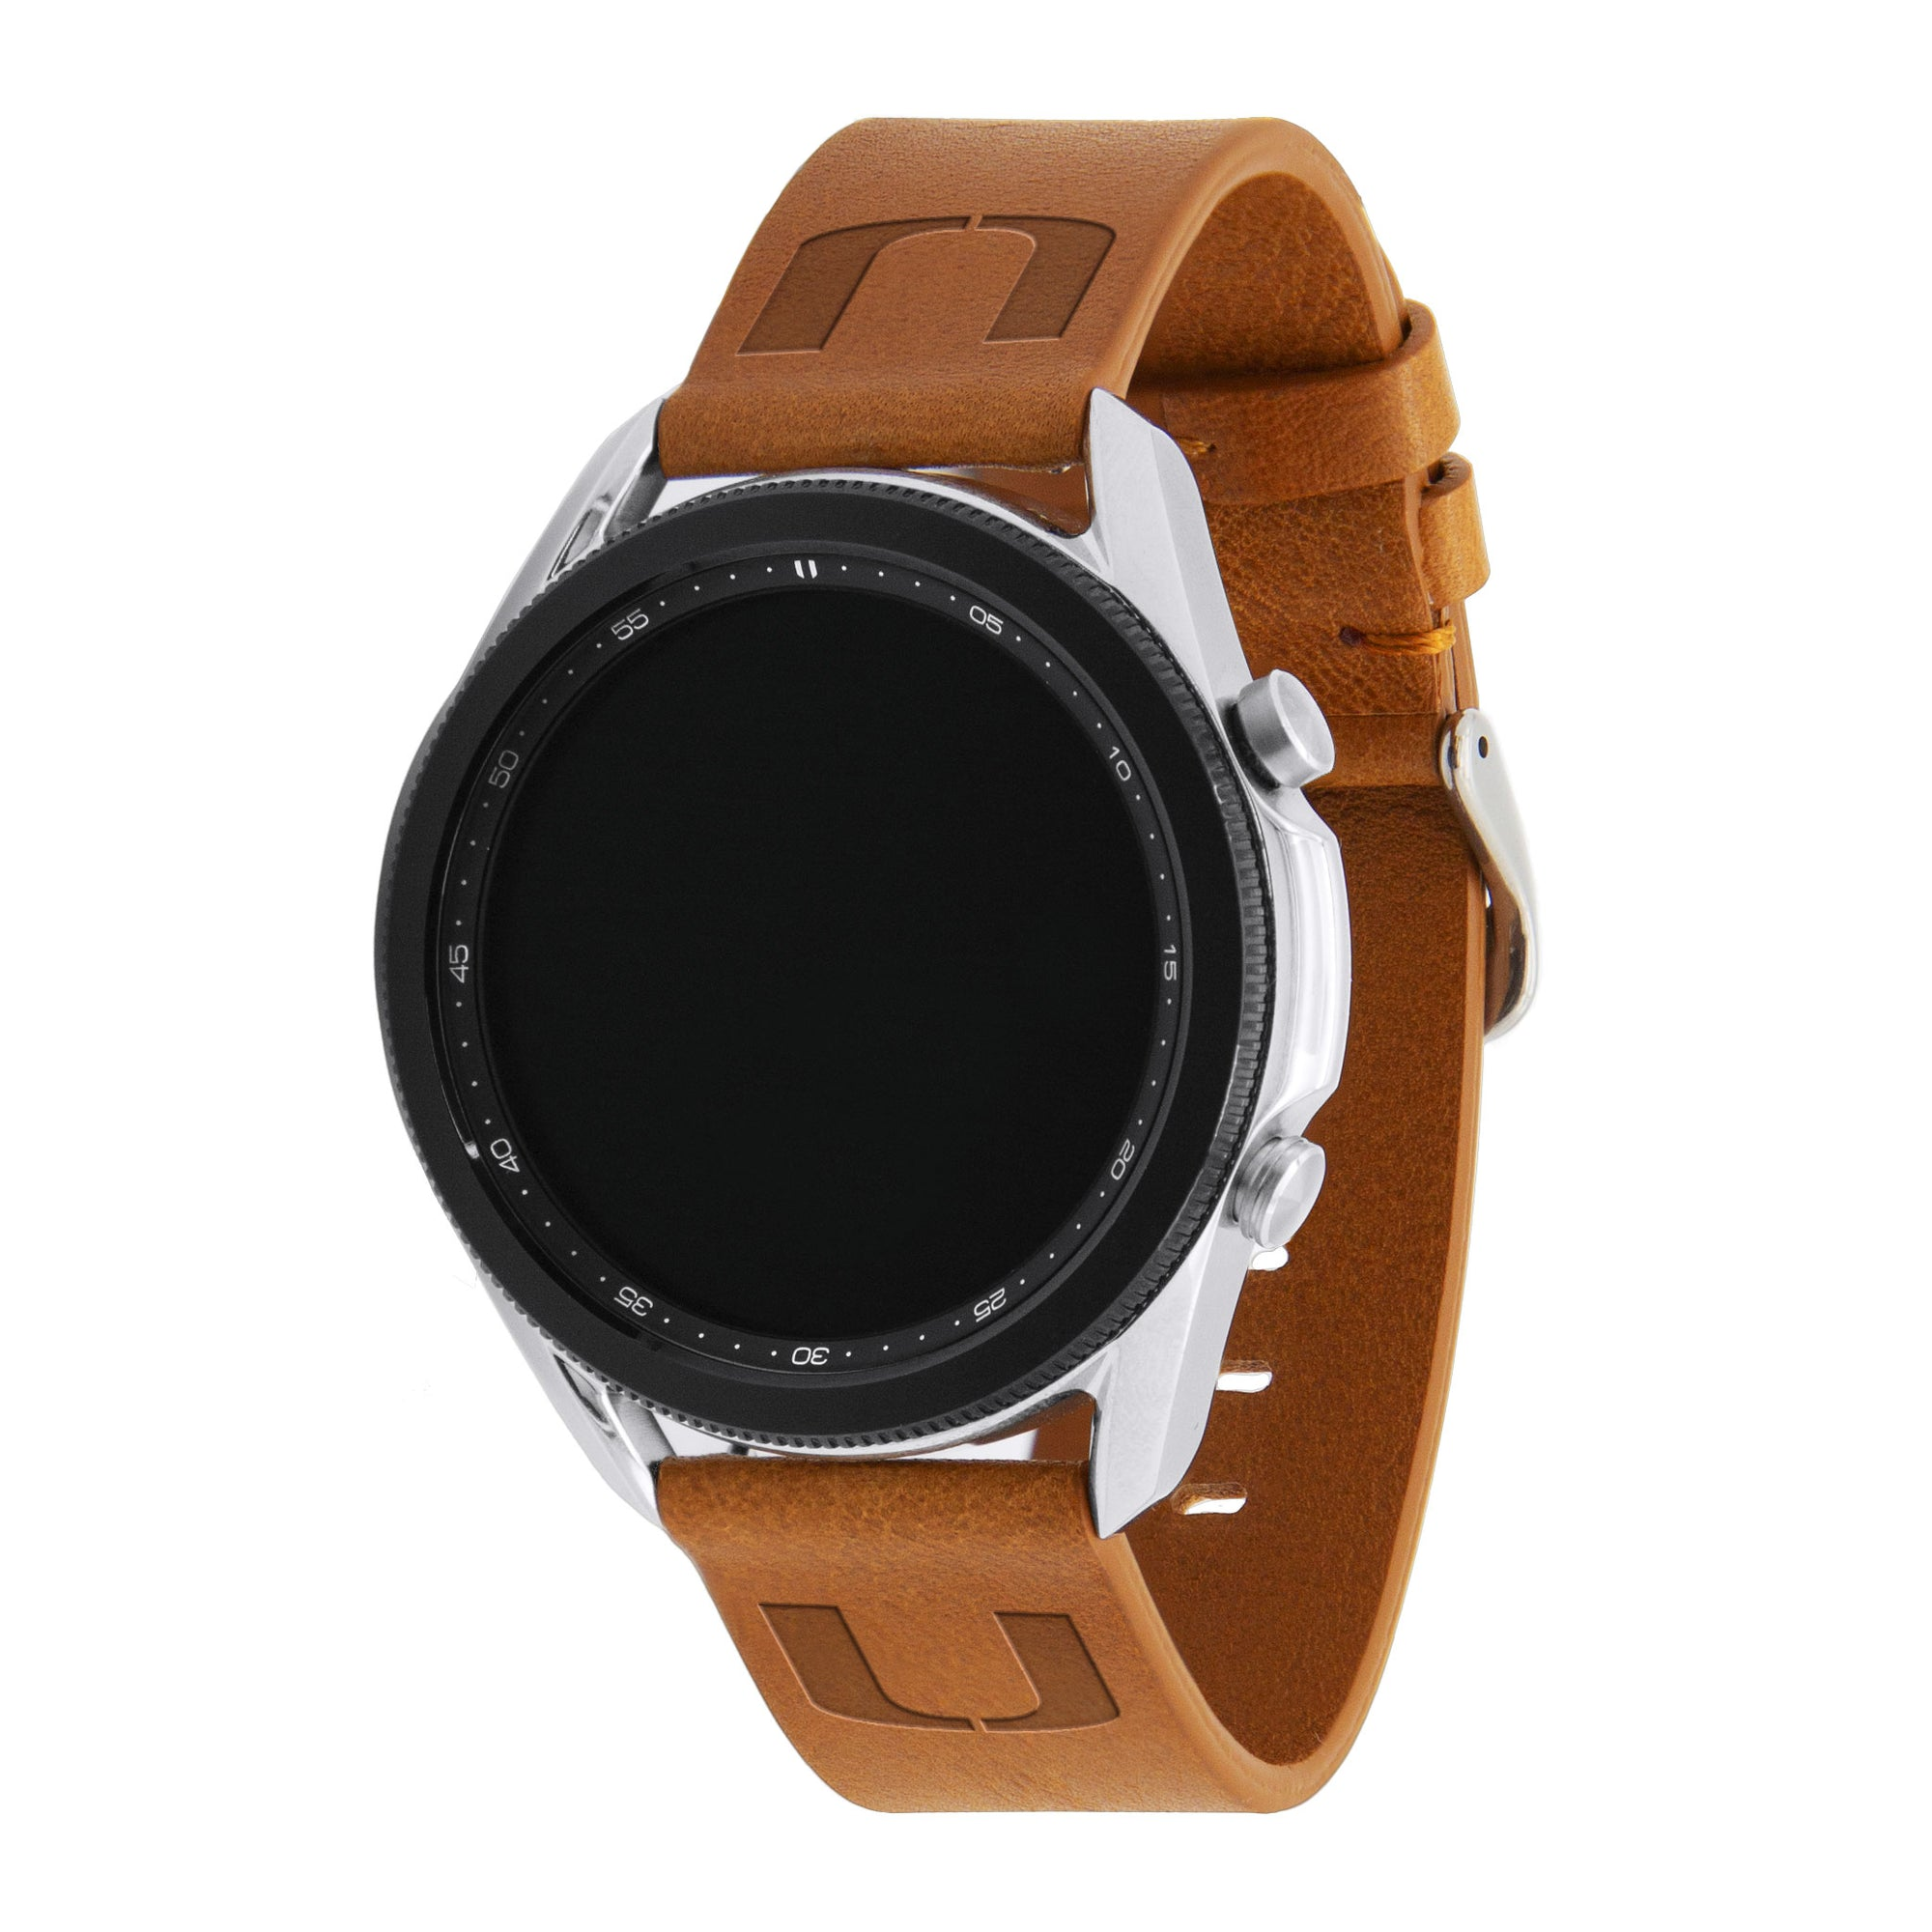 Miami Hurricanes Quick Change Leather Watch Band - AffinityBands